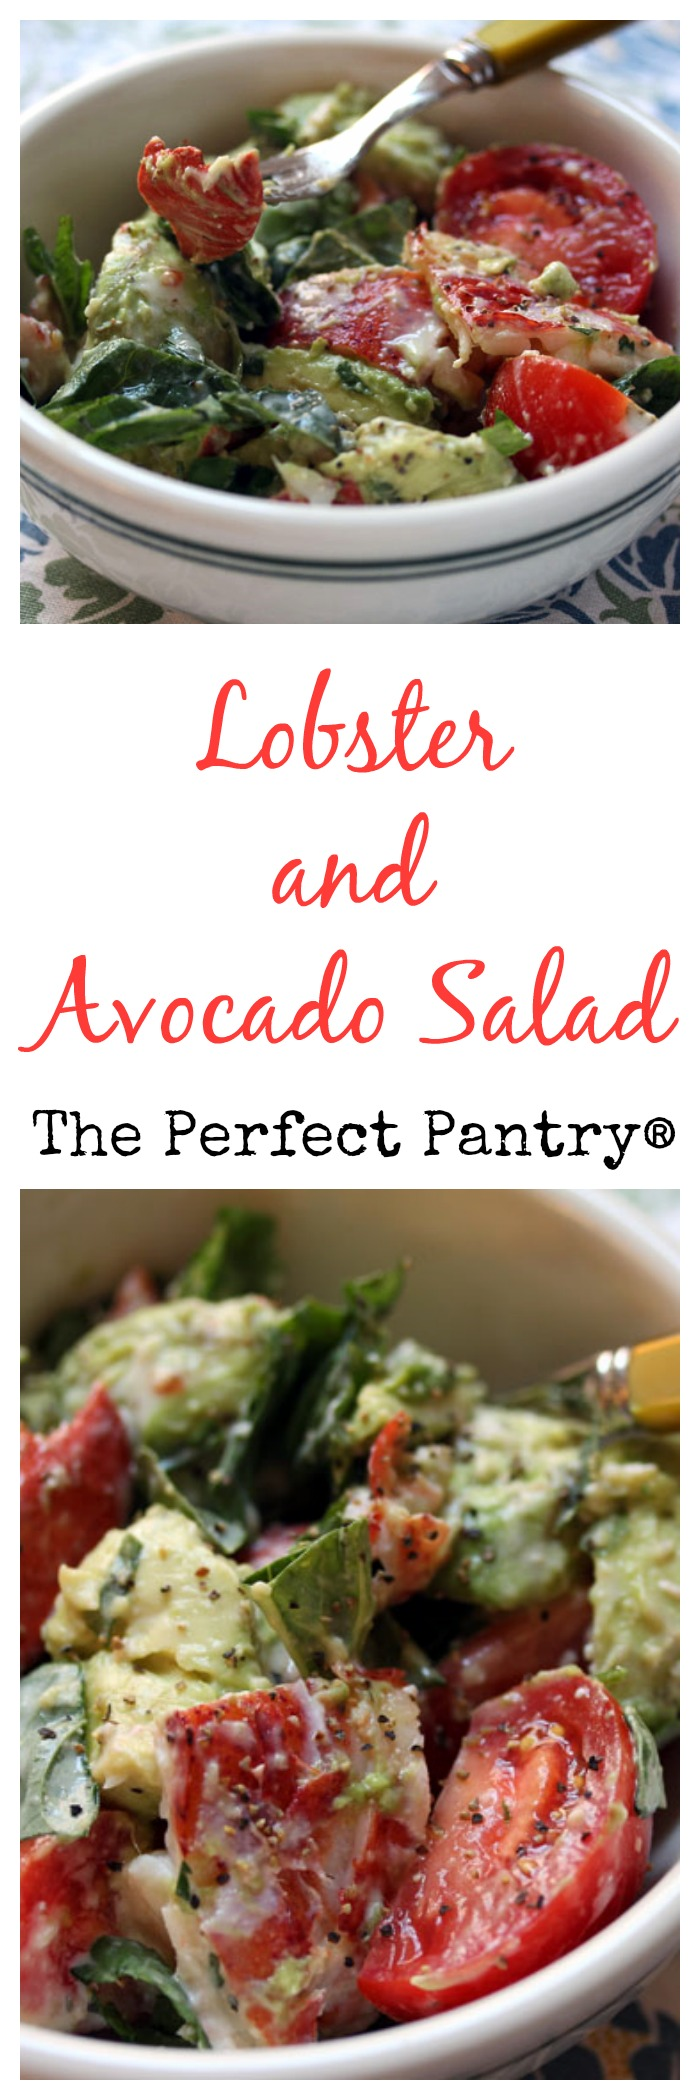 Lobster and avocado salad is easy to make, and fancy enough to serve to guests! From ThePerfectPantry.com